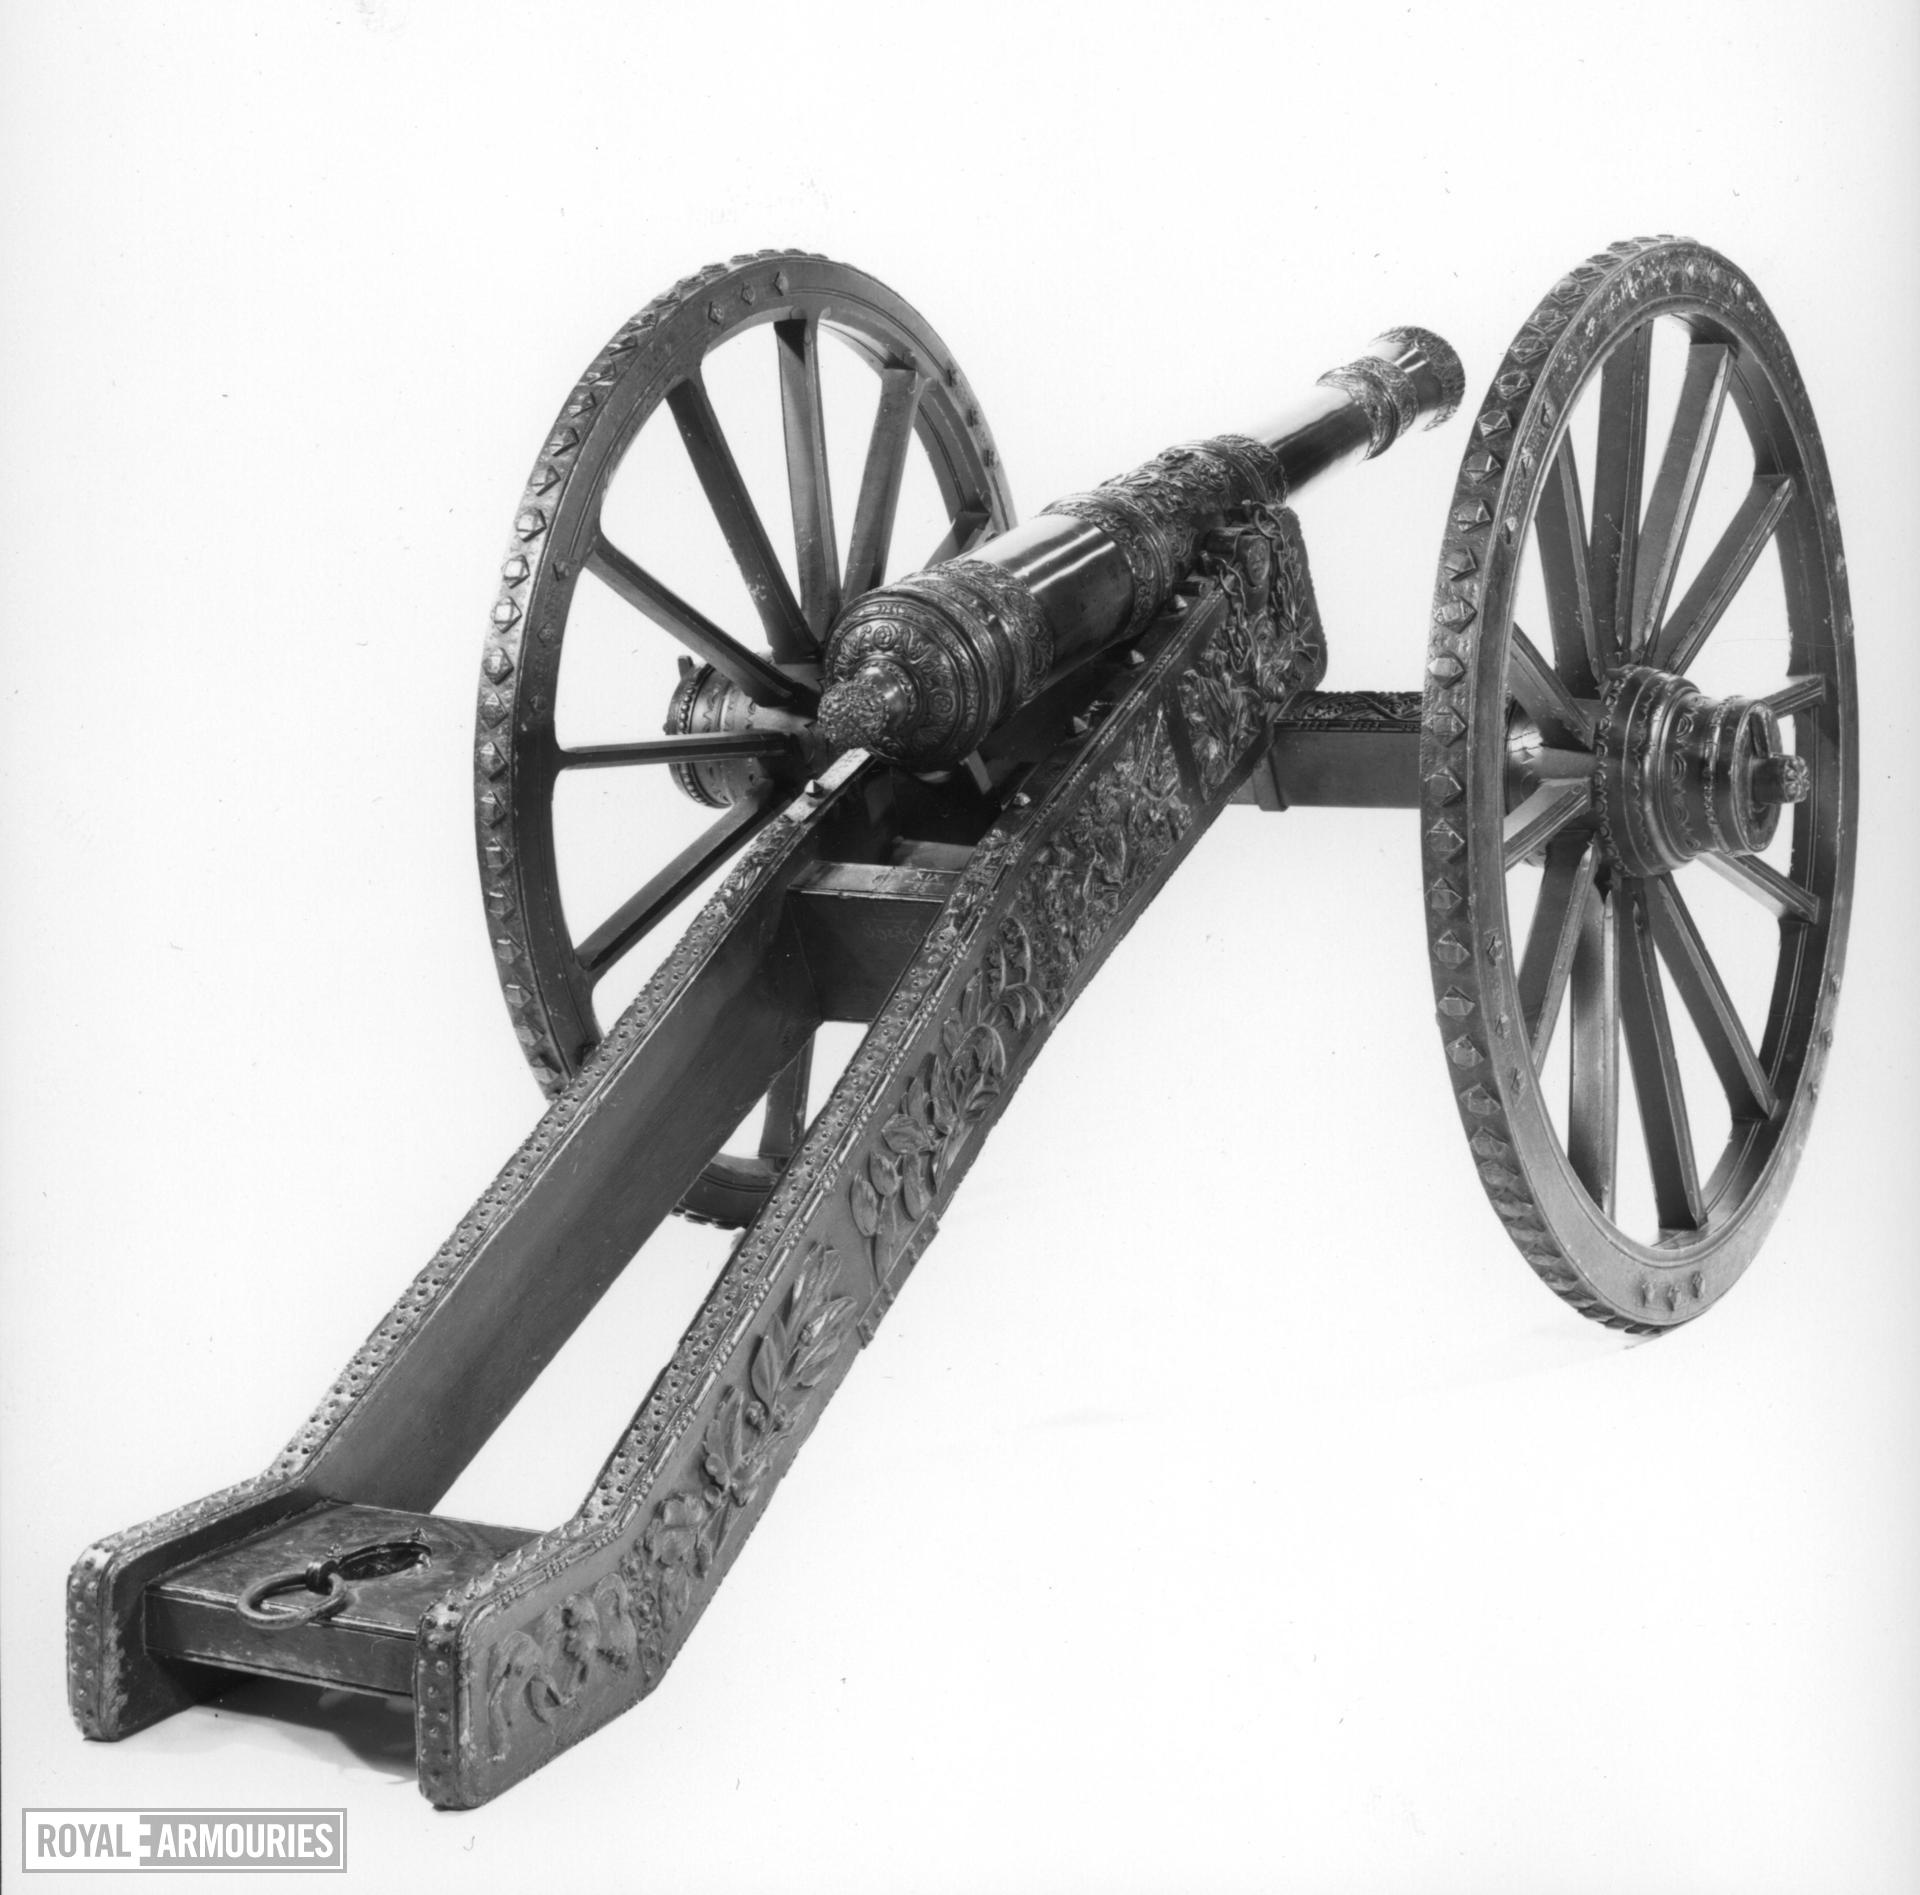 2.3 in gun and carriage